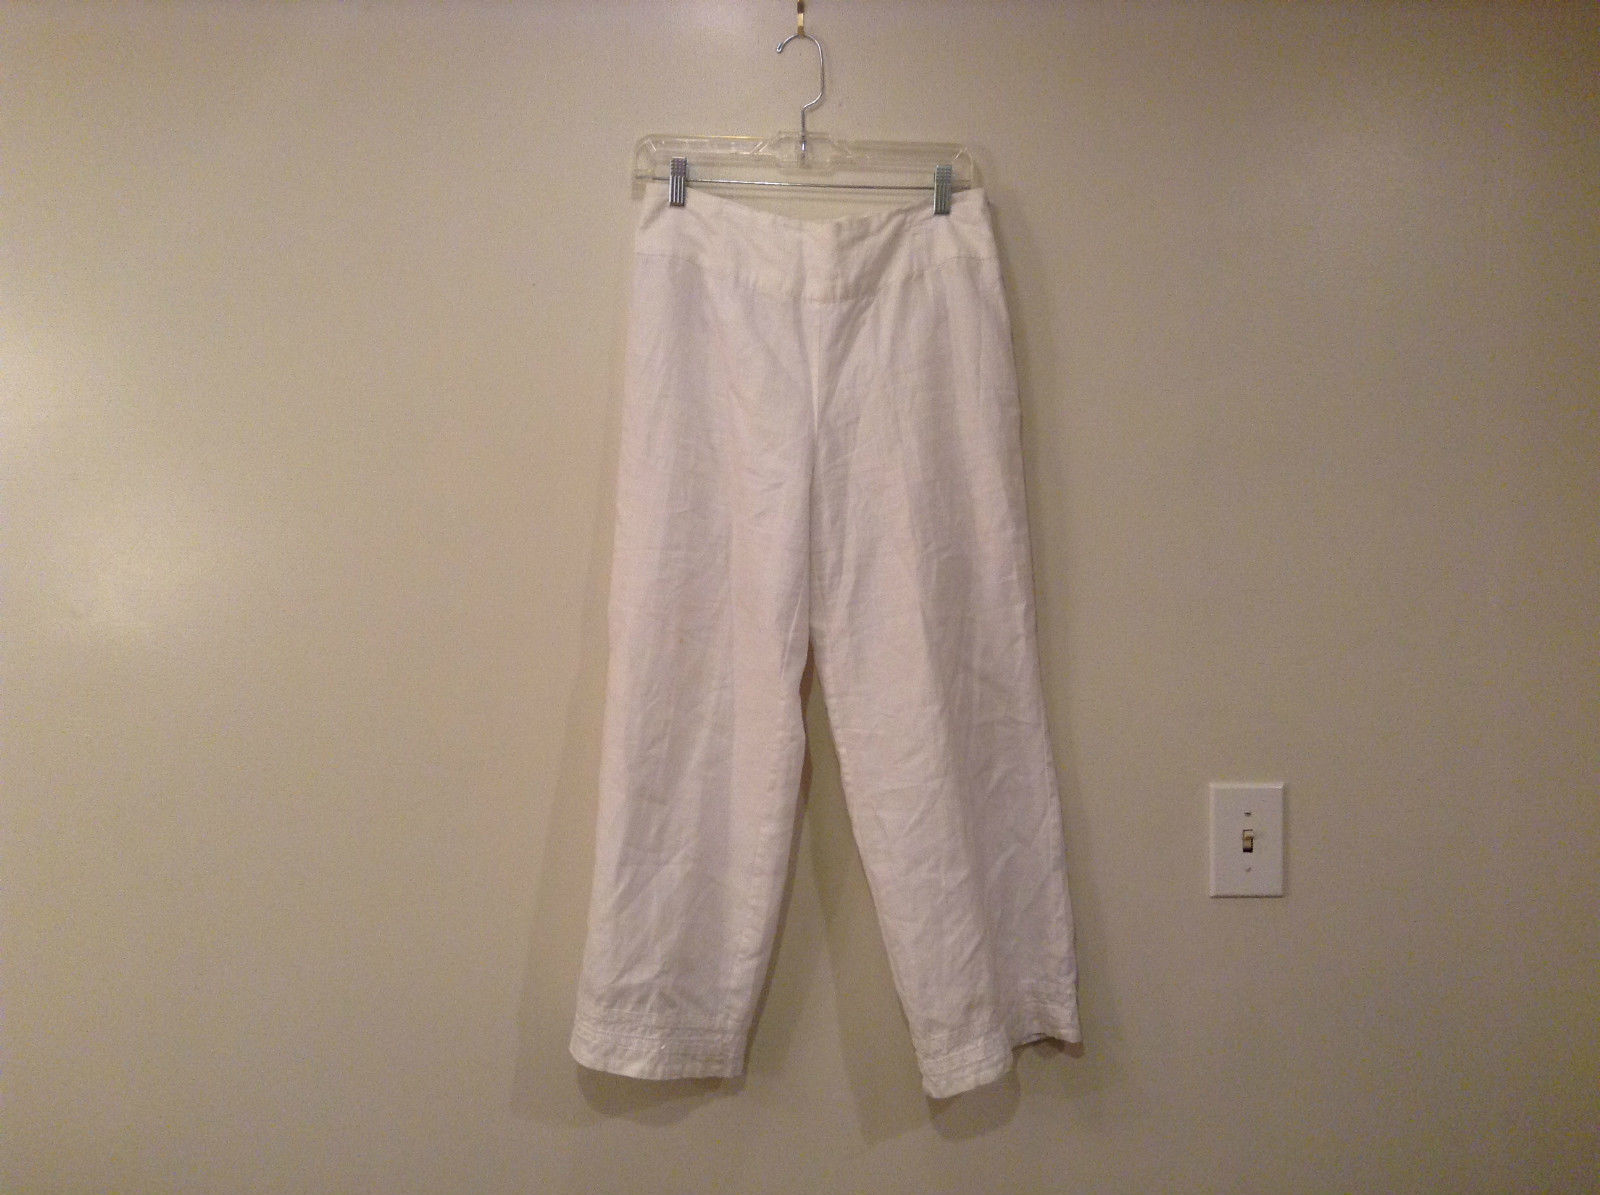 White Richard Malcolm Irish Linen Fully Lined Pants Size 8 Side Zipper Closure